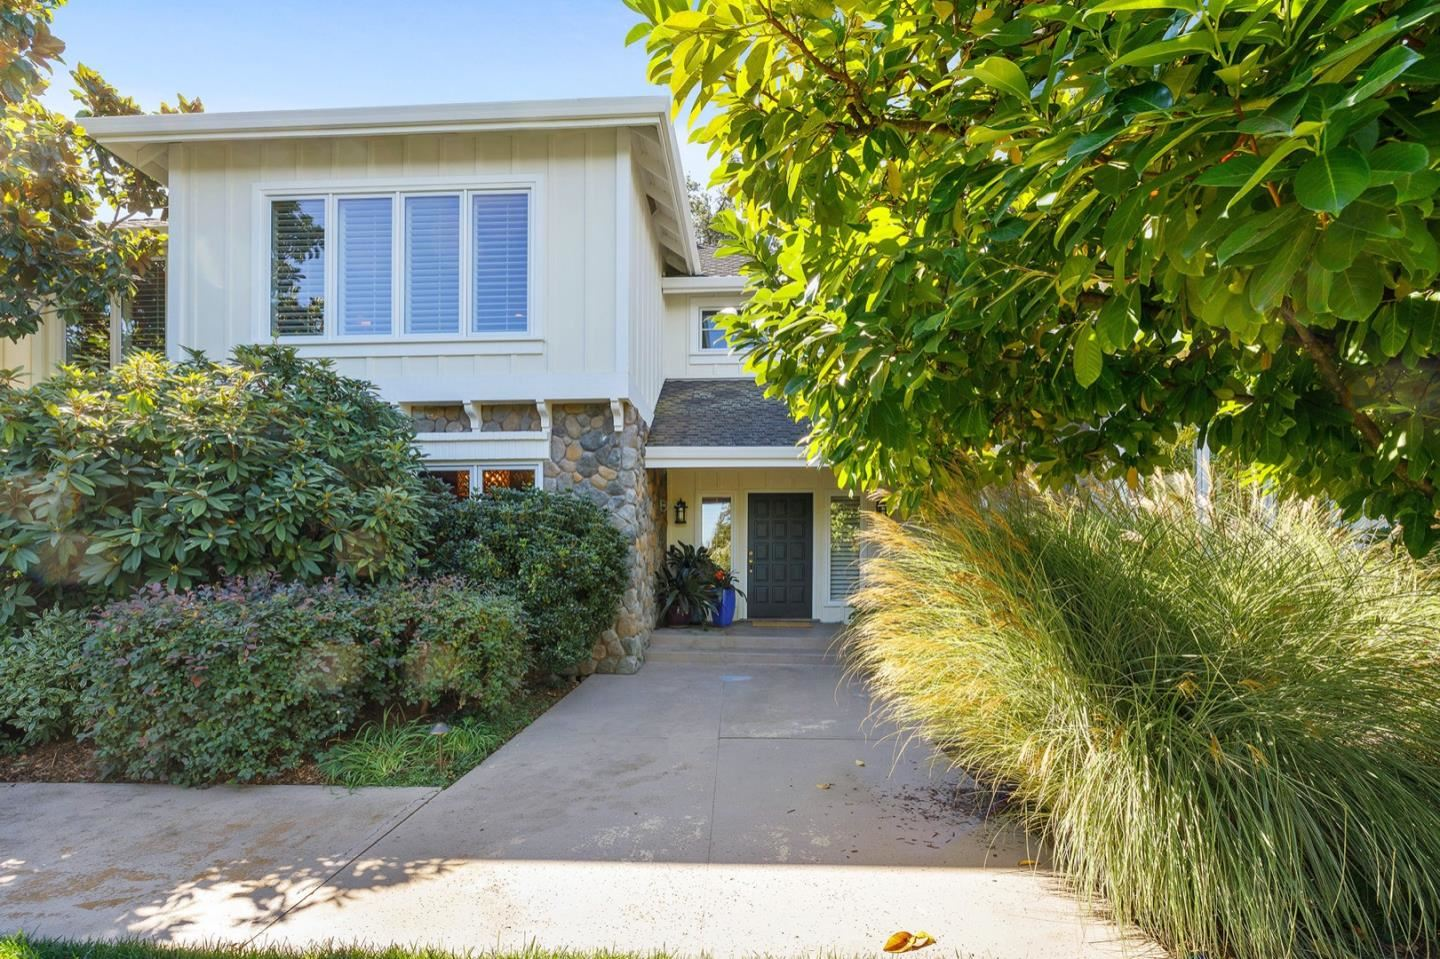 Photo for 4 Knoll VIS, ATHERTON, CA 94027 (MLS # ML81812636)